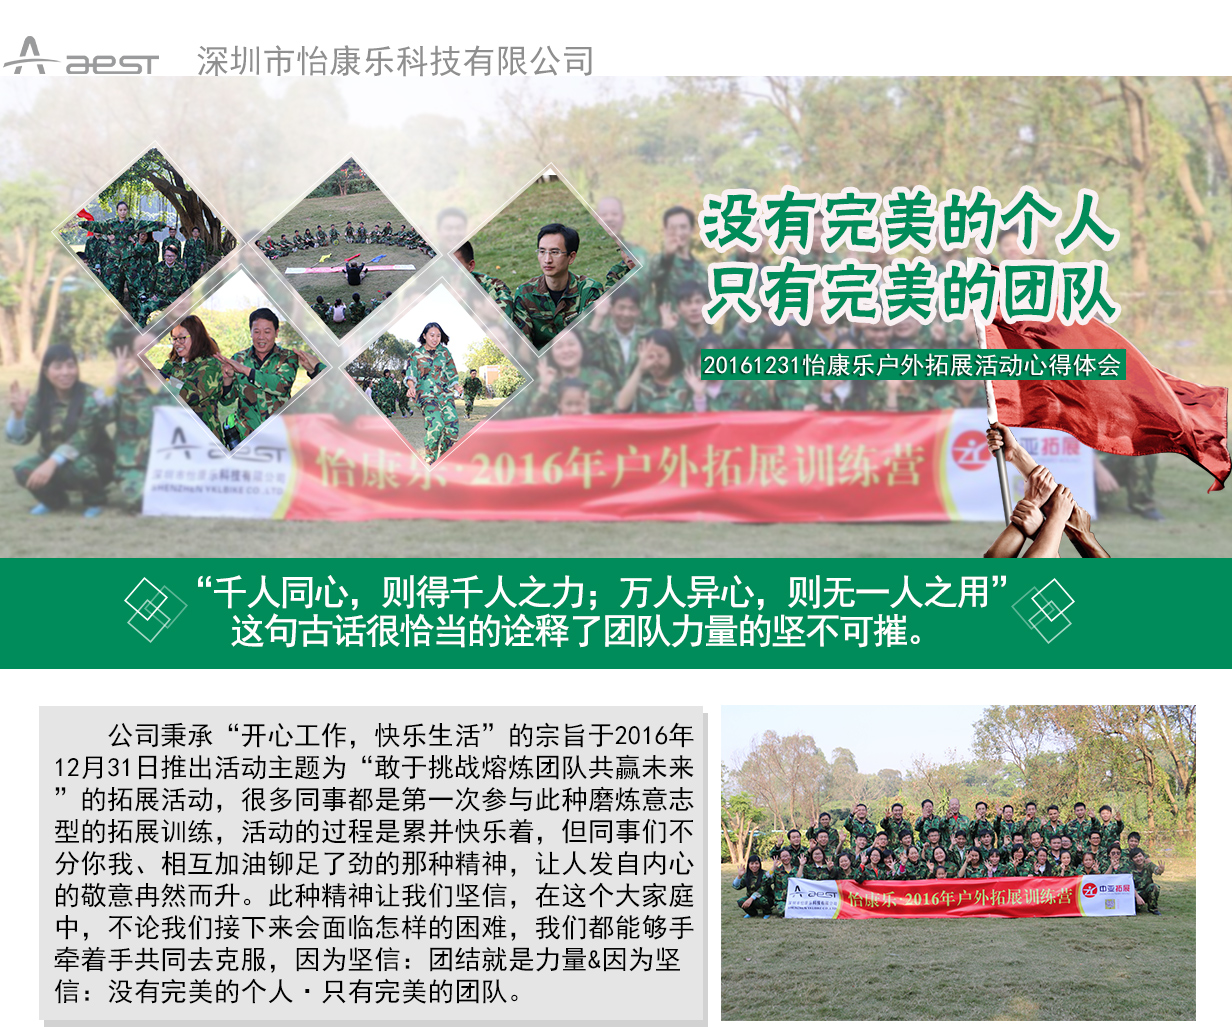 SHENZHEN YKLBIKE CO.,LTD 2016 outdoor development training camp